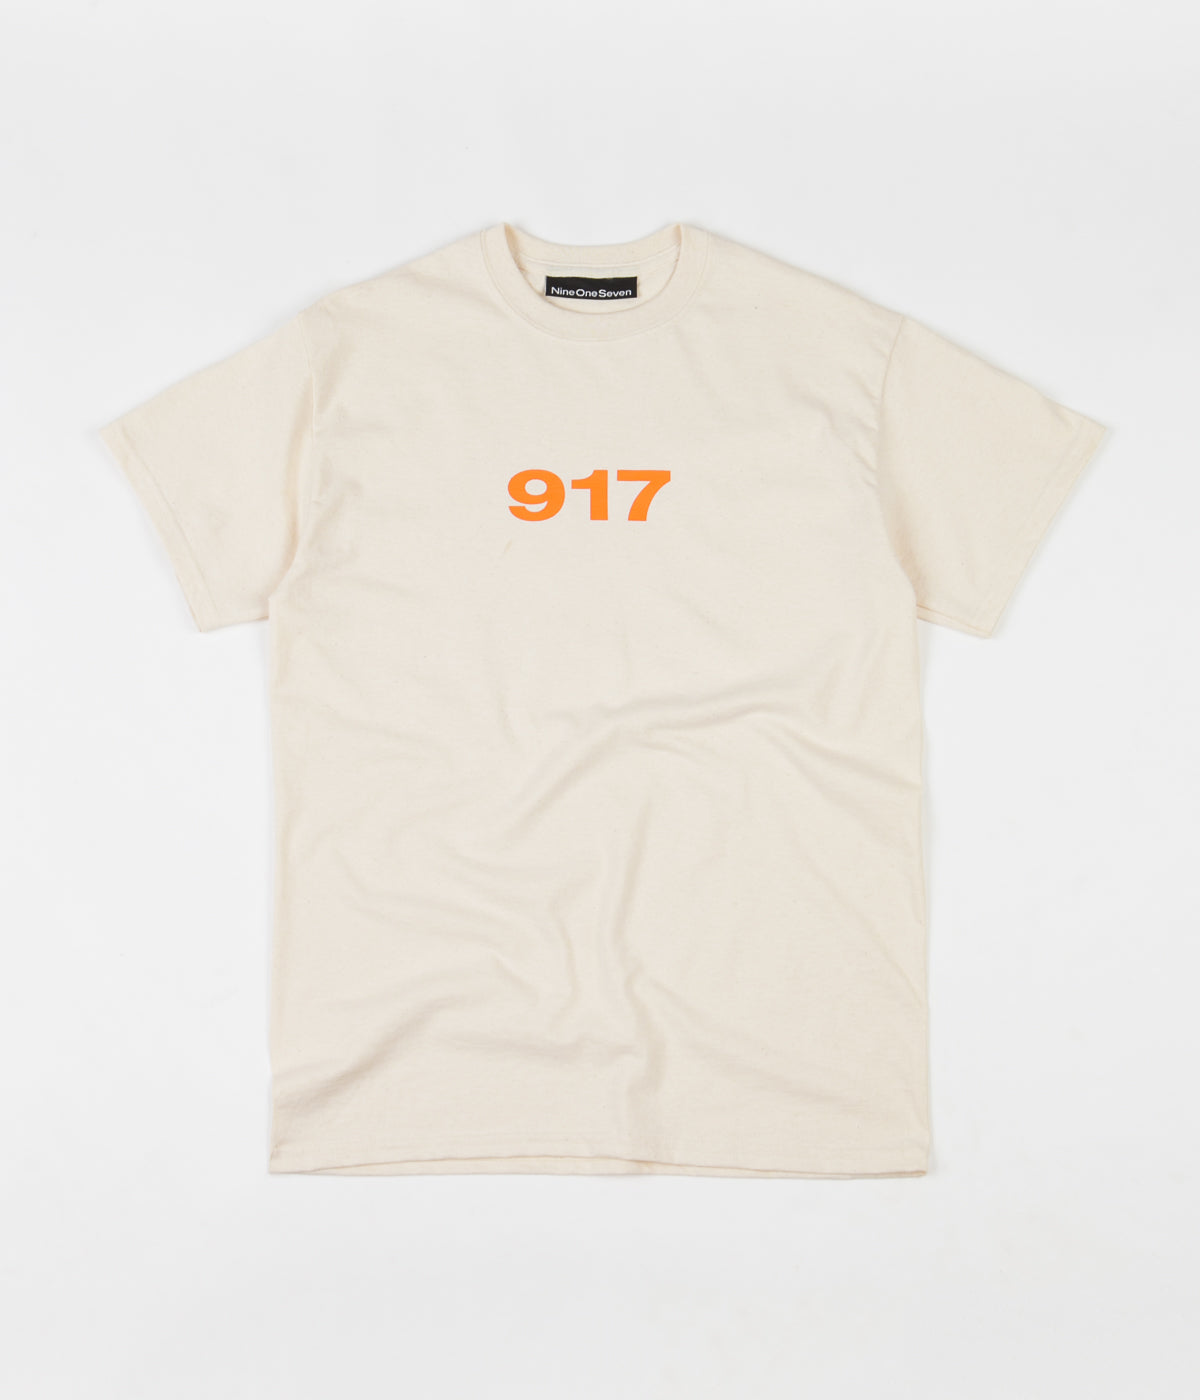 Call Me 917 Block Logo T-Shirt - Creme